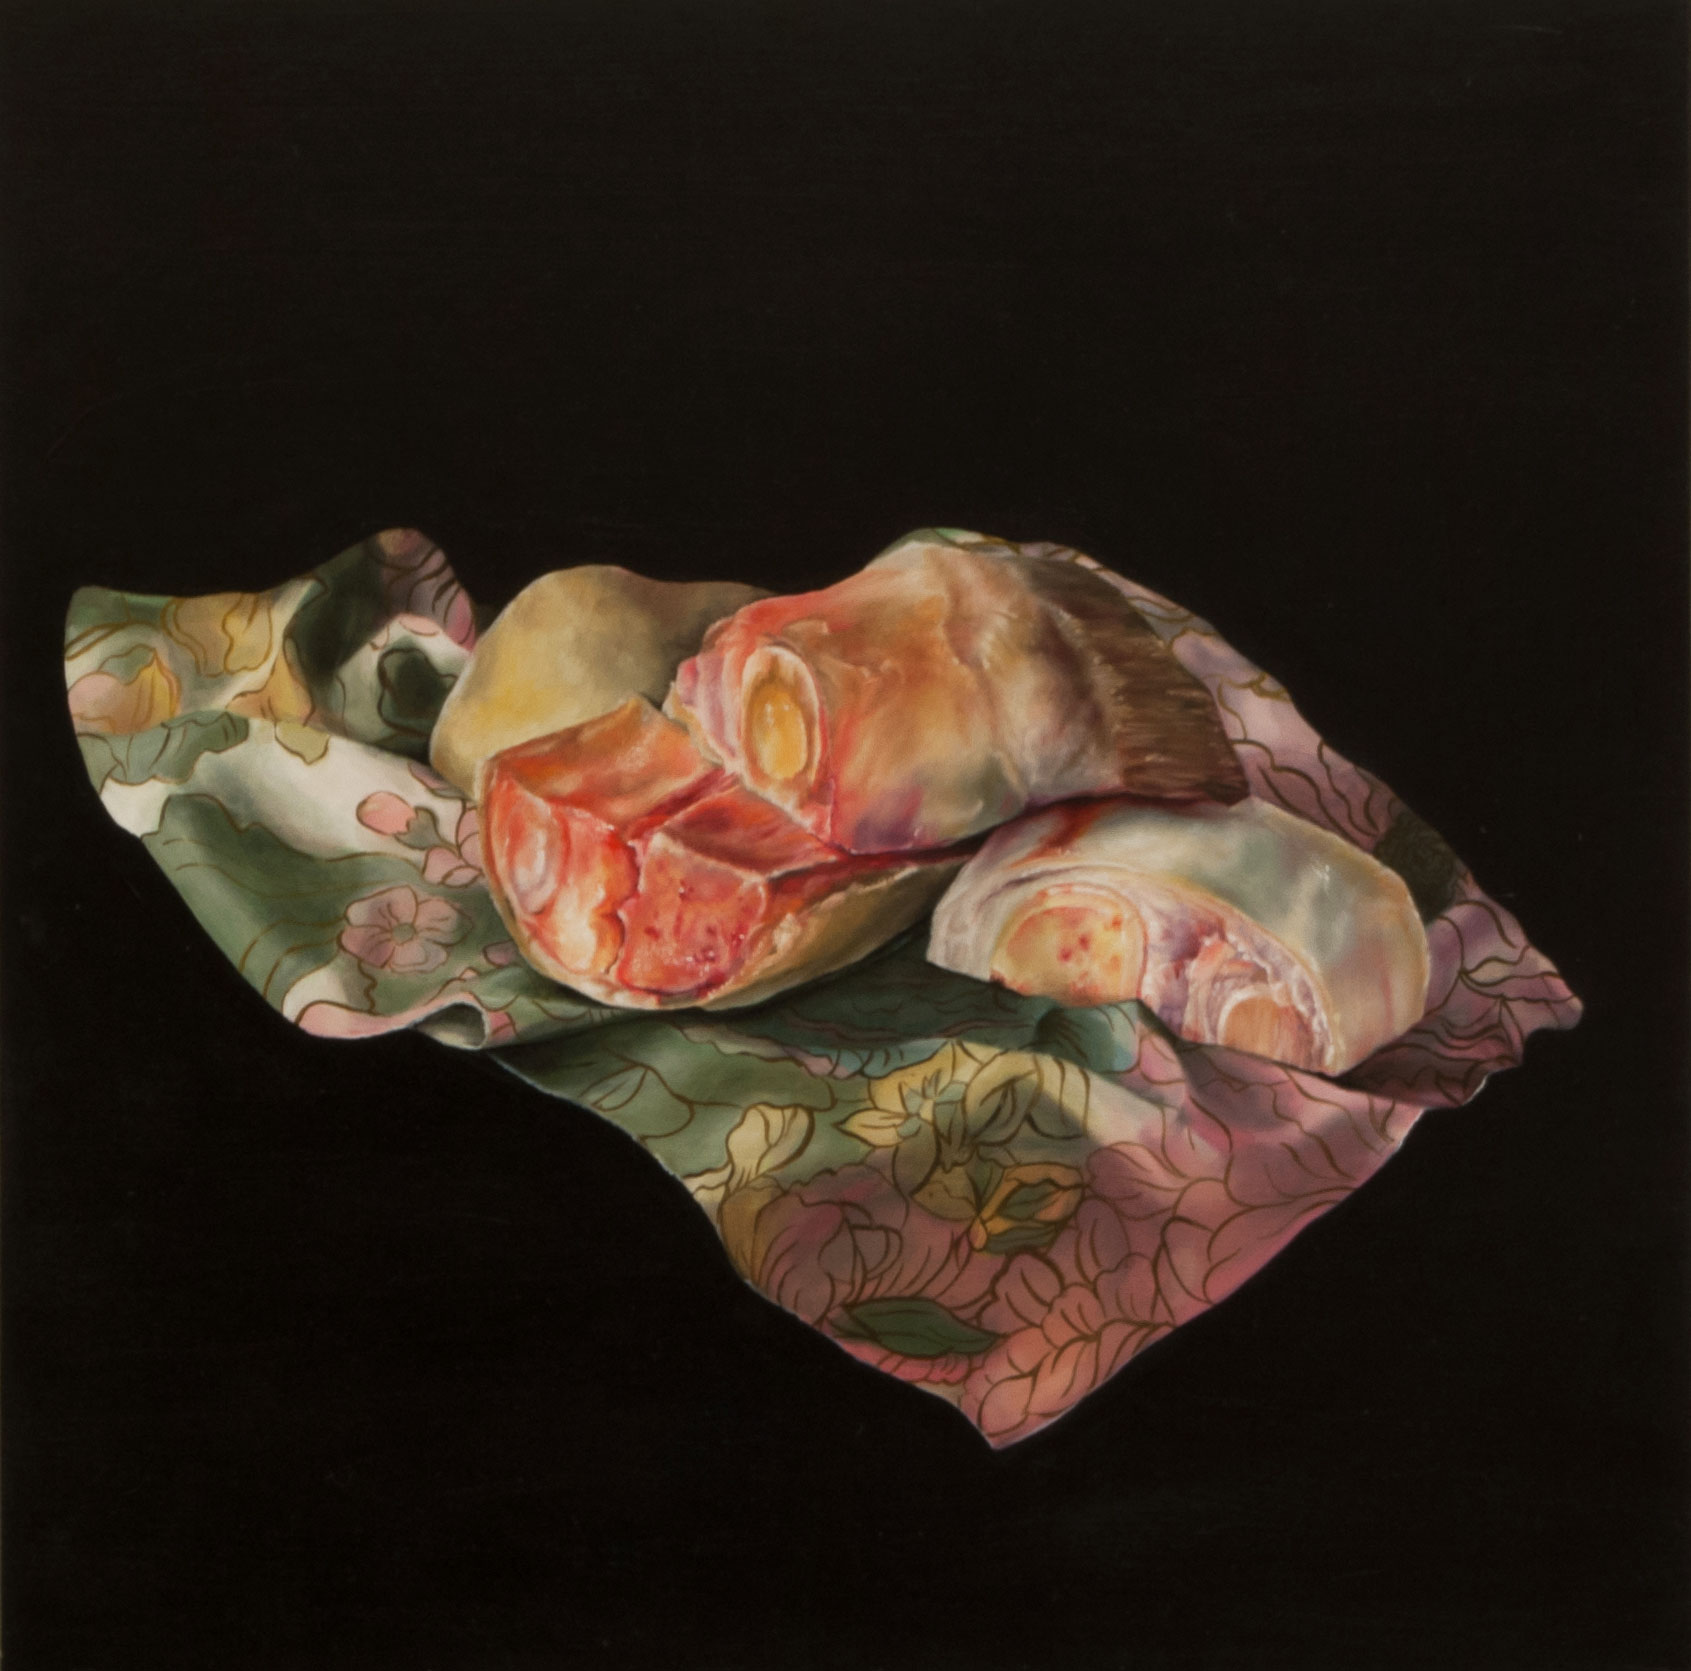 raw meat on floral fabric